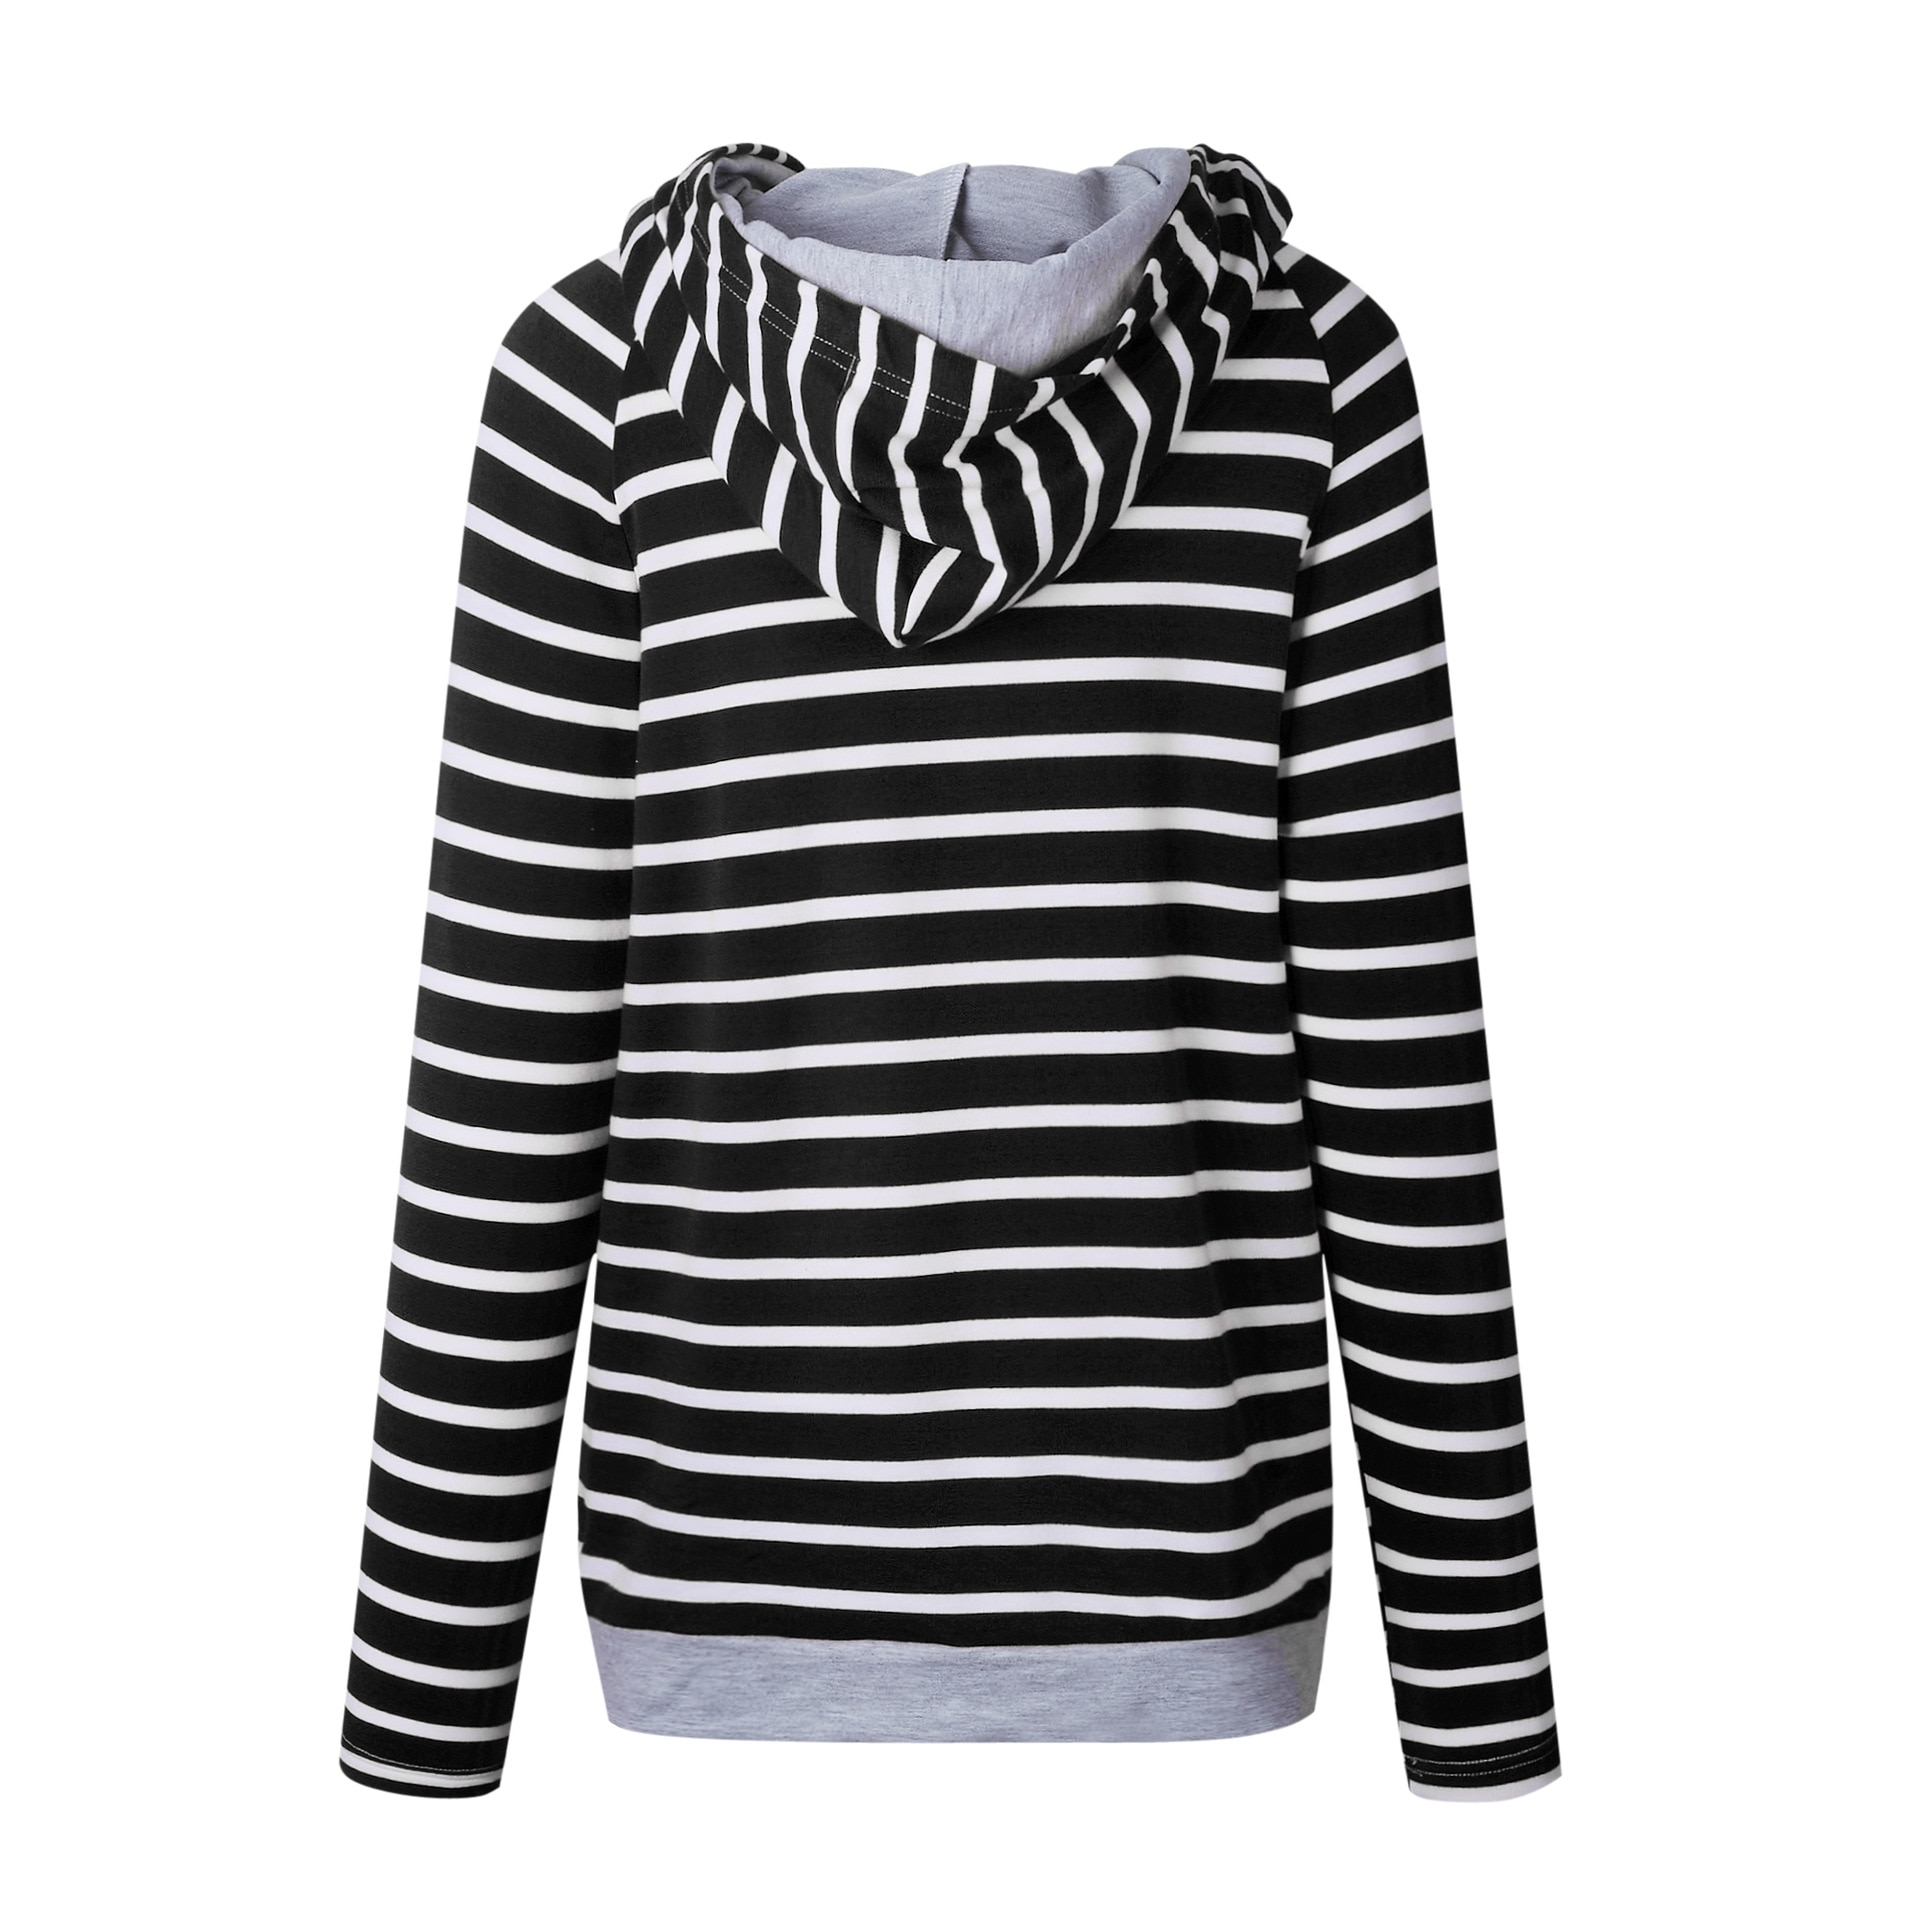 Women's Patchwork Striped Pullover Long Sleeve Hoodie, Tops With Pockets, Hooded Sweatshirt 37